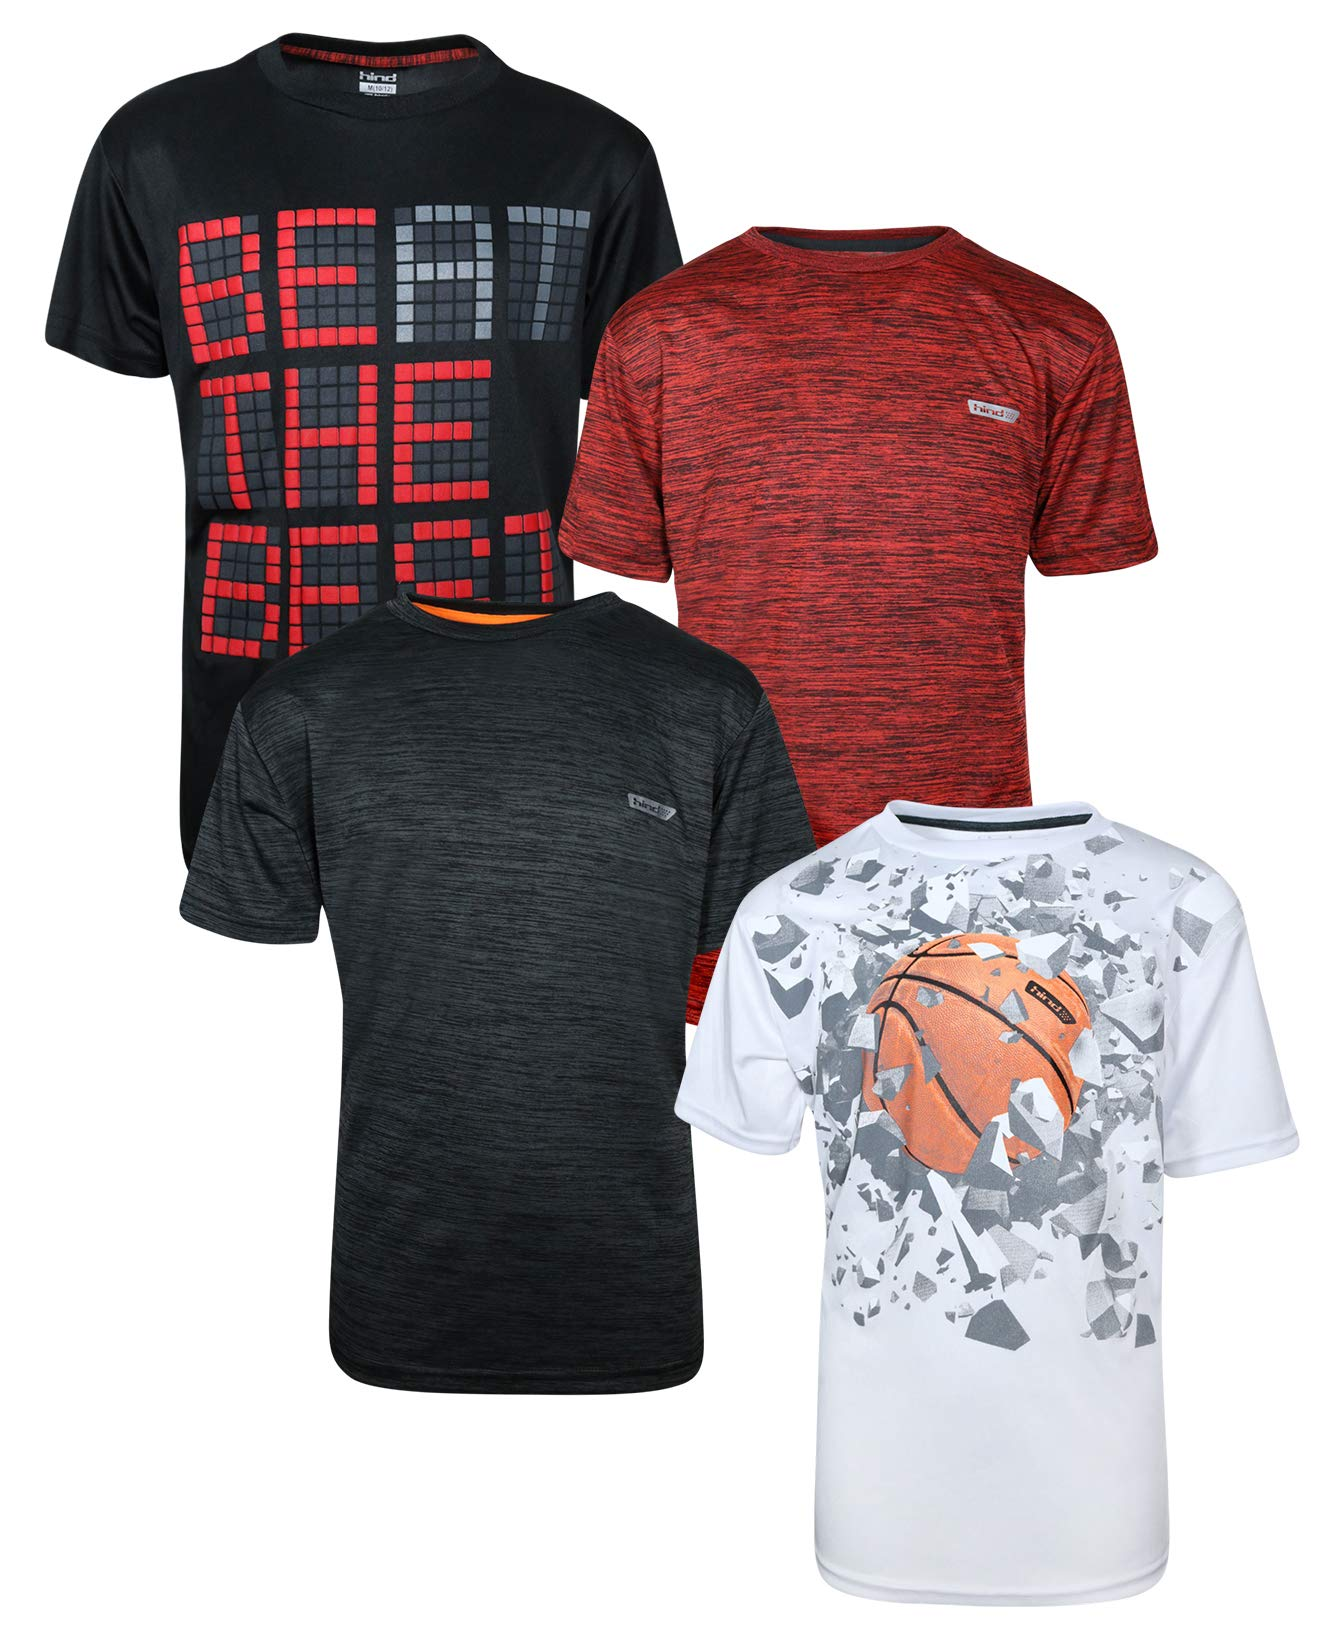 Hind Boys Performance Quick Dry Athletic Sports T-Shirt (4-Pack) (Beat The Best, Medium / 10-12)'